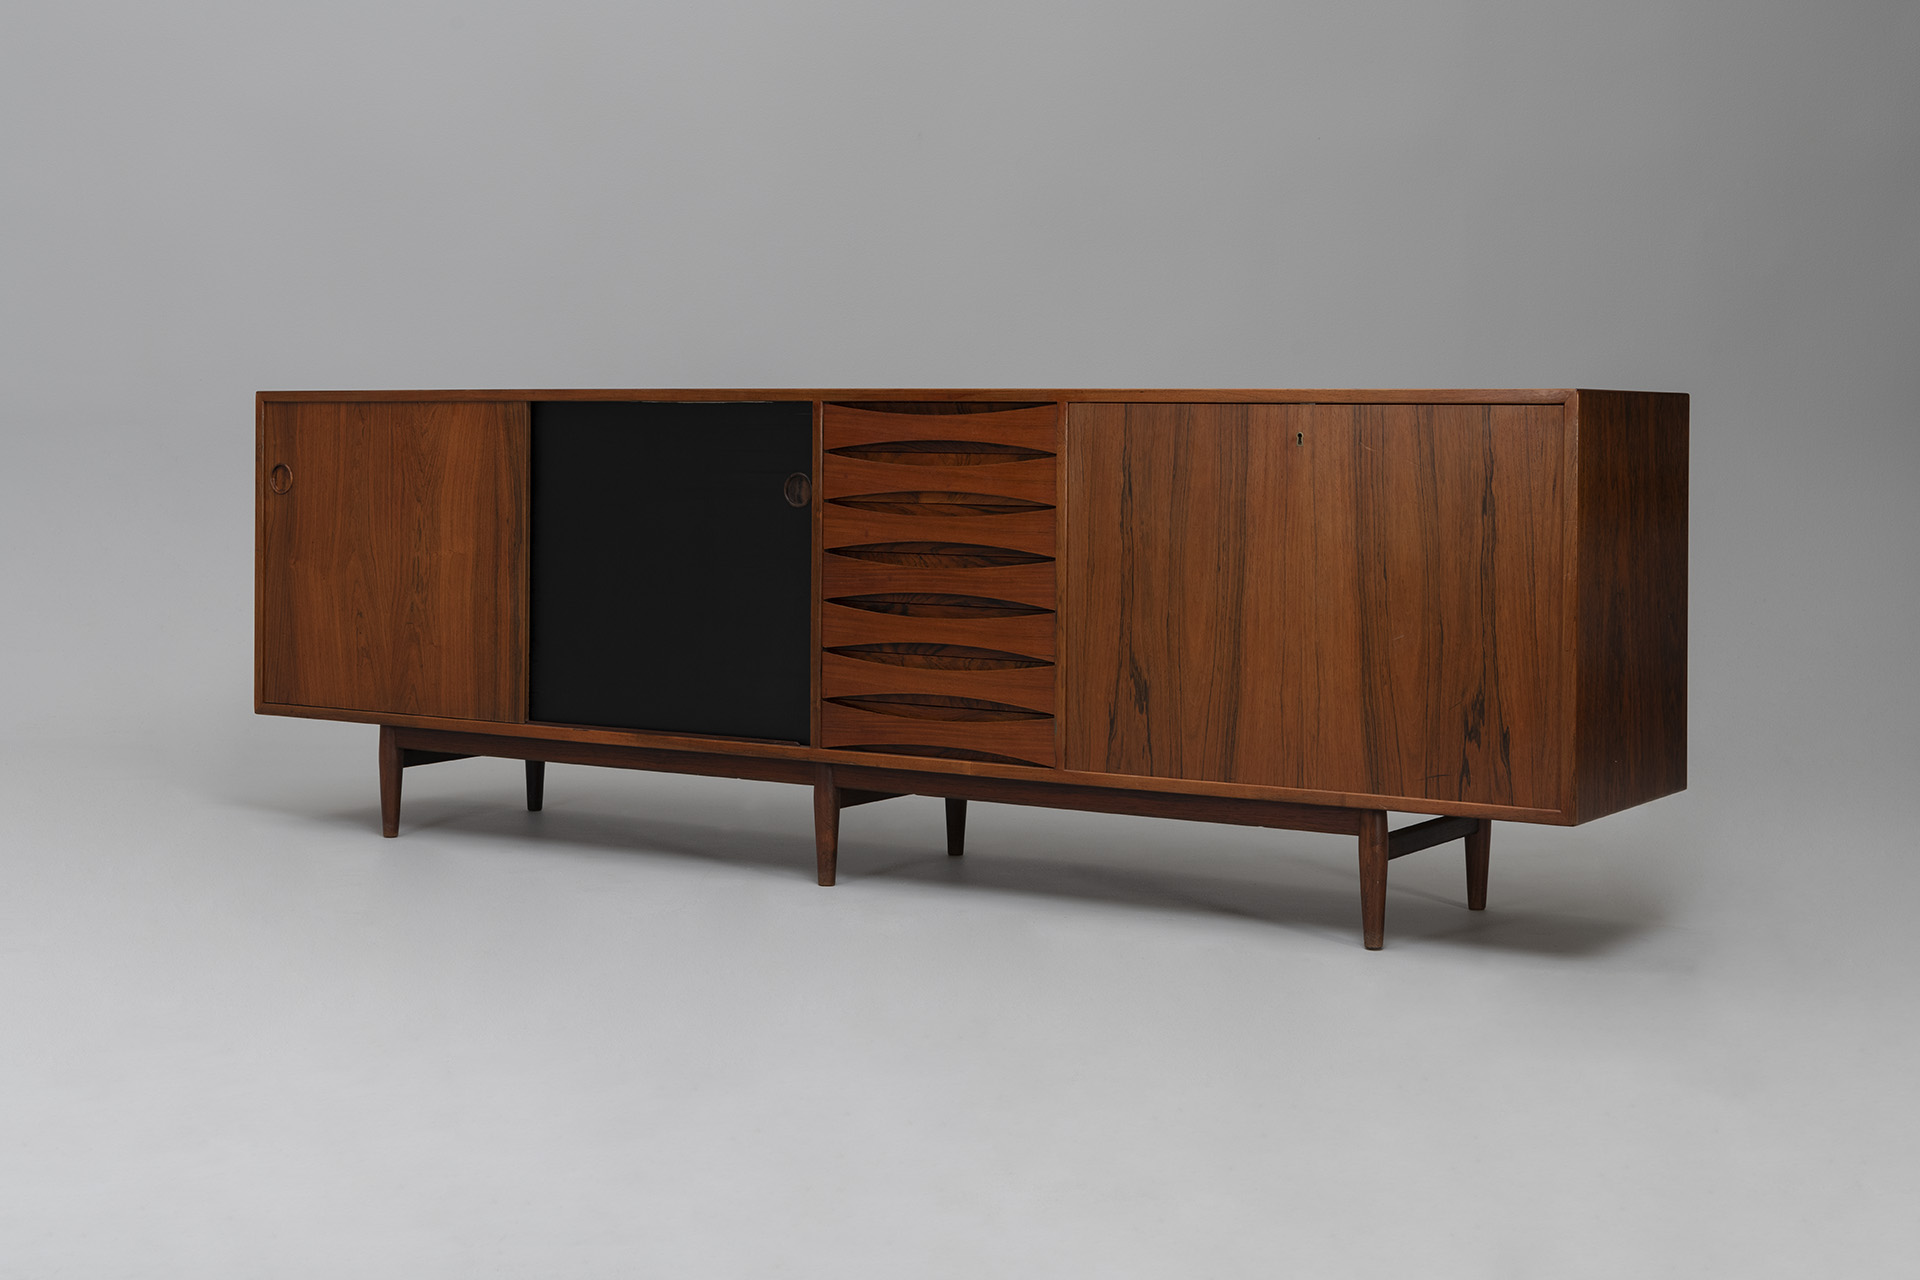 Sideboard, Model no. 29A